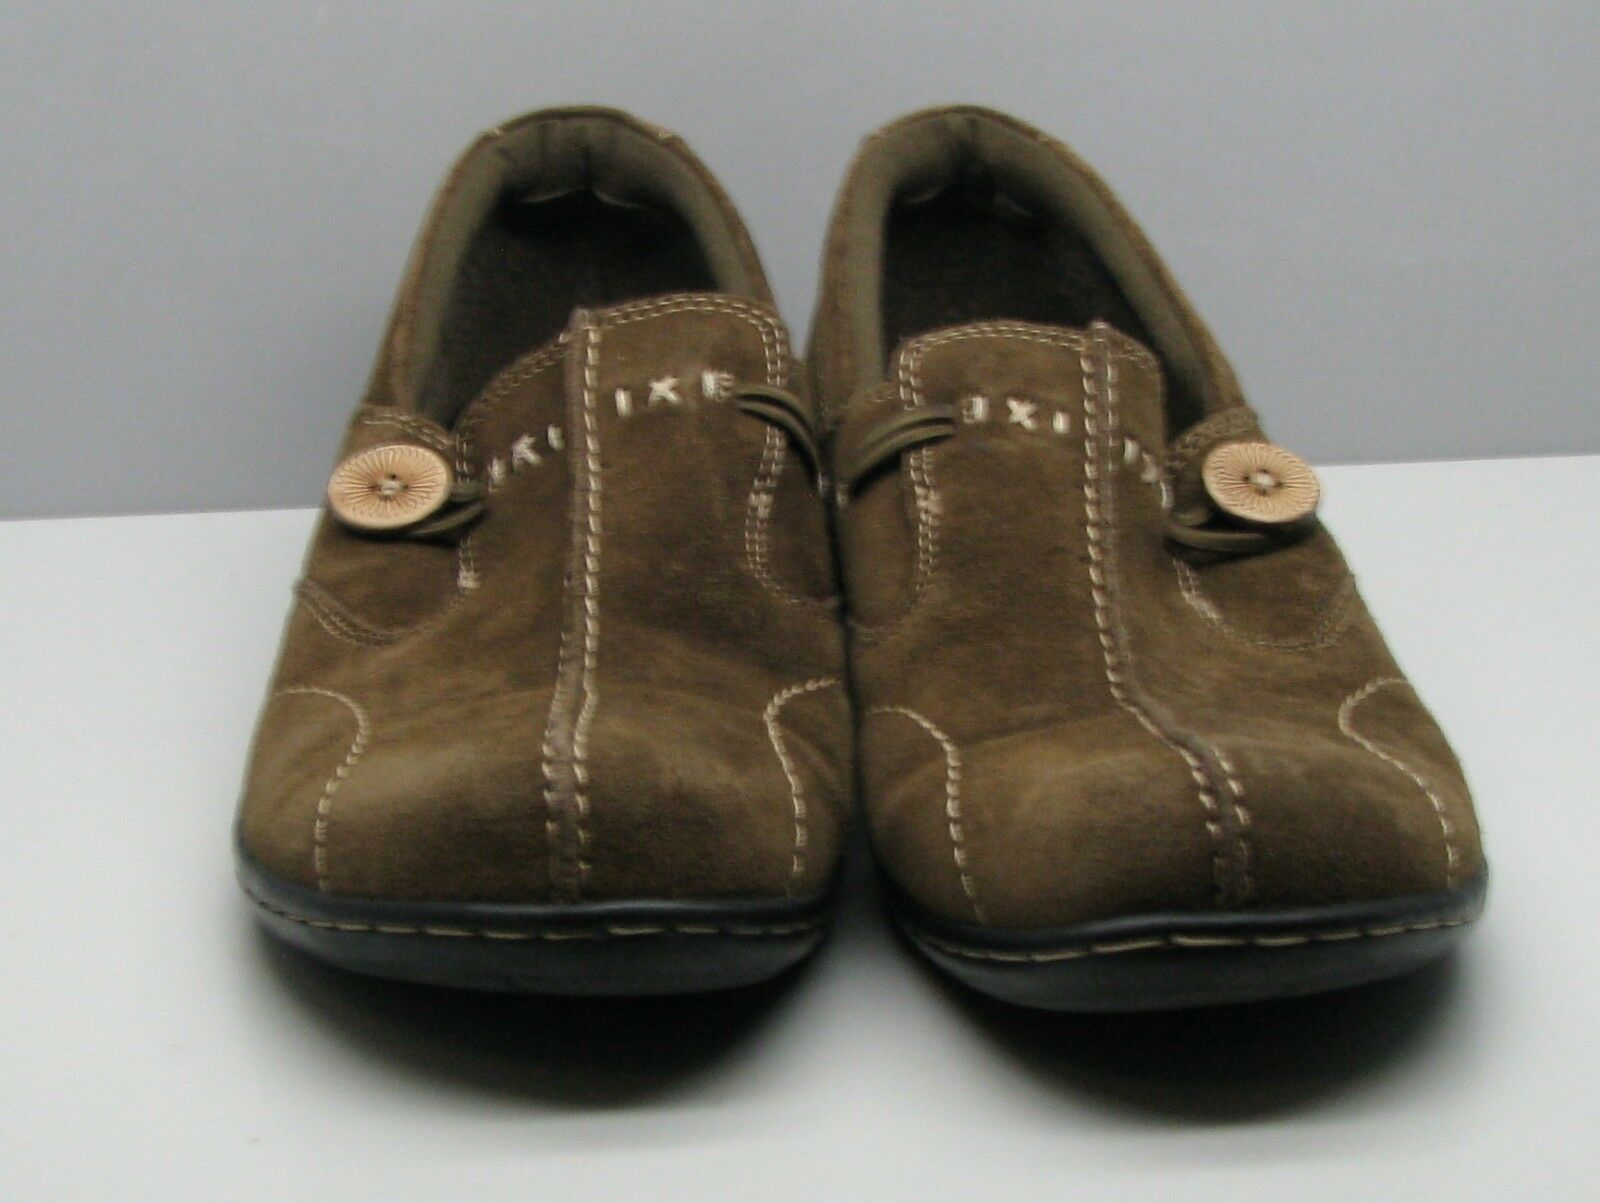 Clarks Bendables Suede Leather SHOES Woman's 9 M Flats Olive Green Button Accent